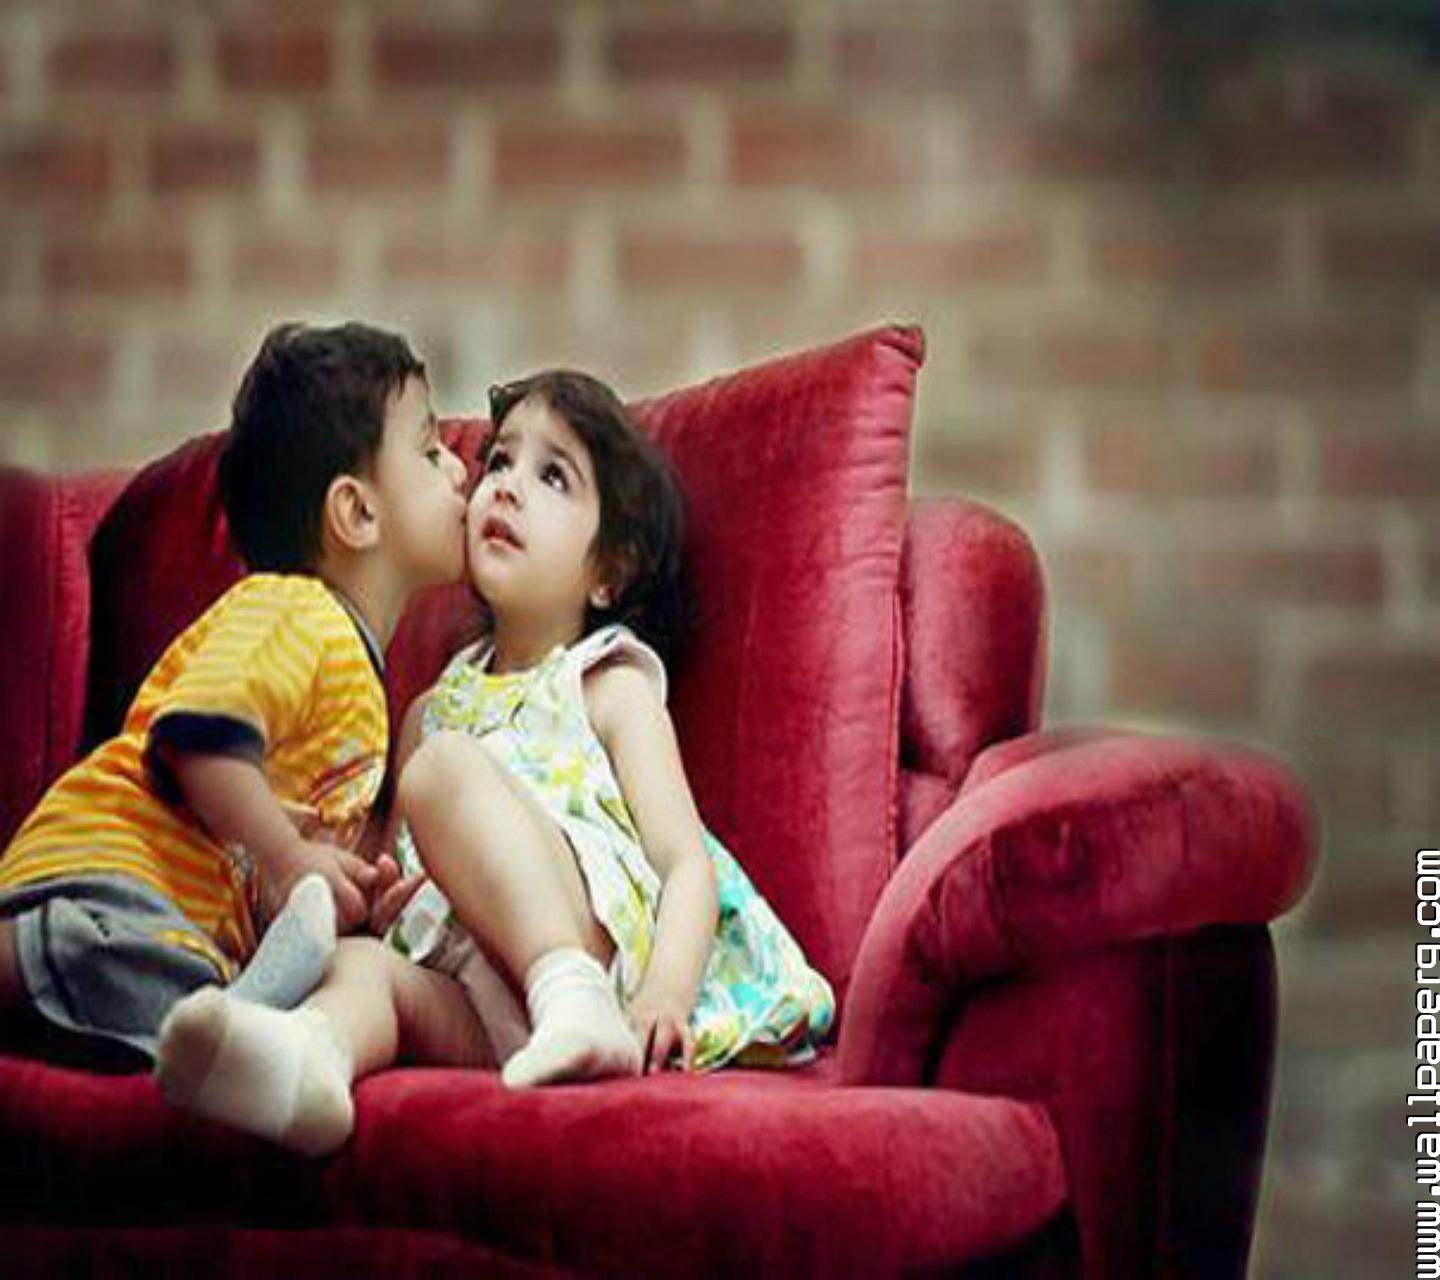 Baby Love Images Wallpaper : cute Baby Love Kiss www.pixshark.com - Images Galleries With A Bite!